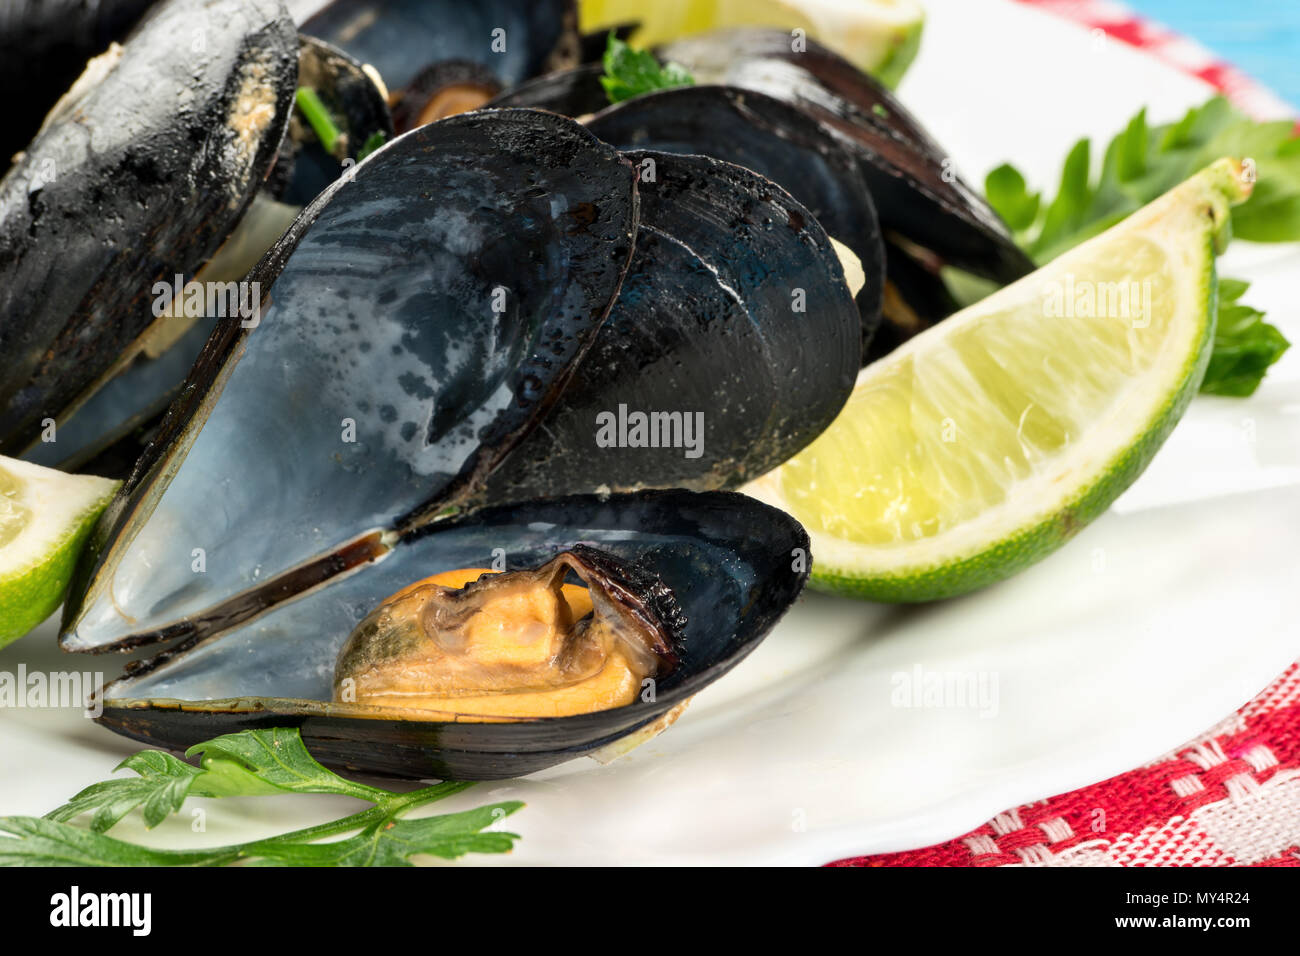 Open mussels cooked with ingredients on a plate, close-up - Stock Image